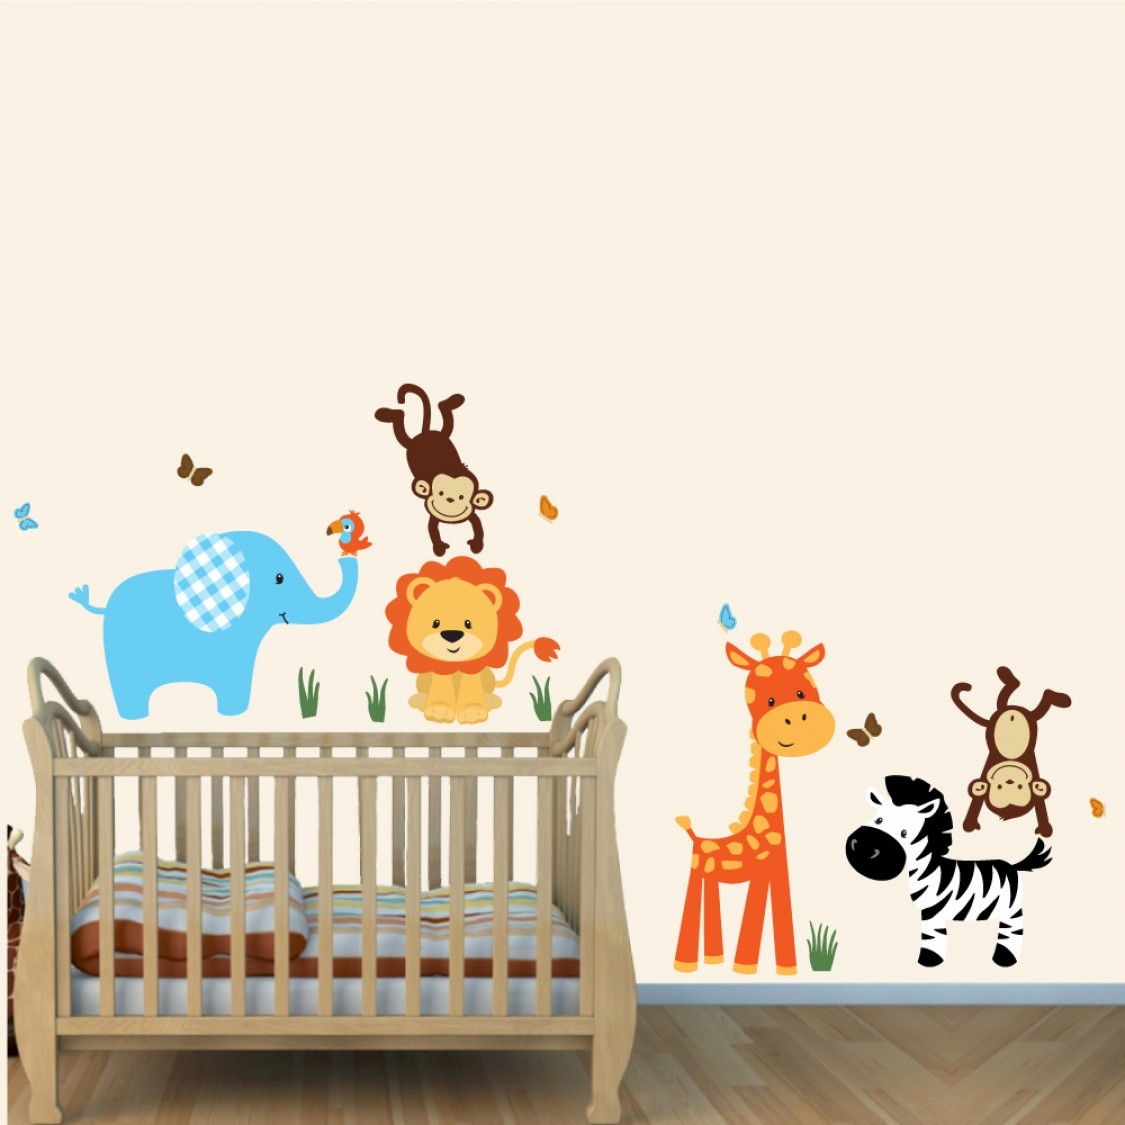 Colorful Safari Wall Murals With Lion Stickers For Boys